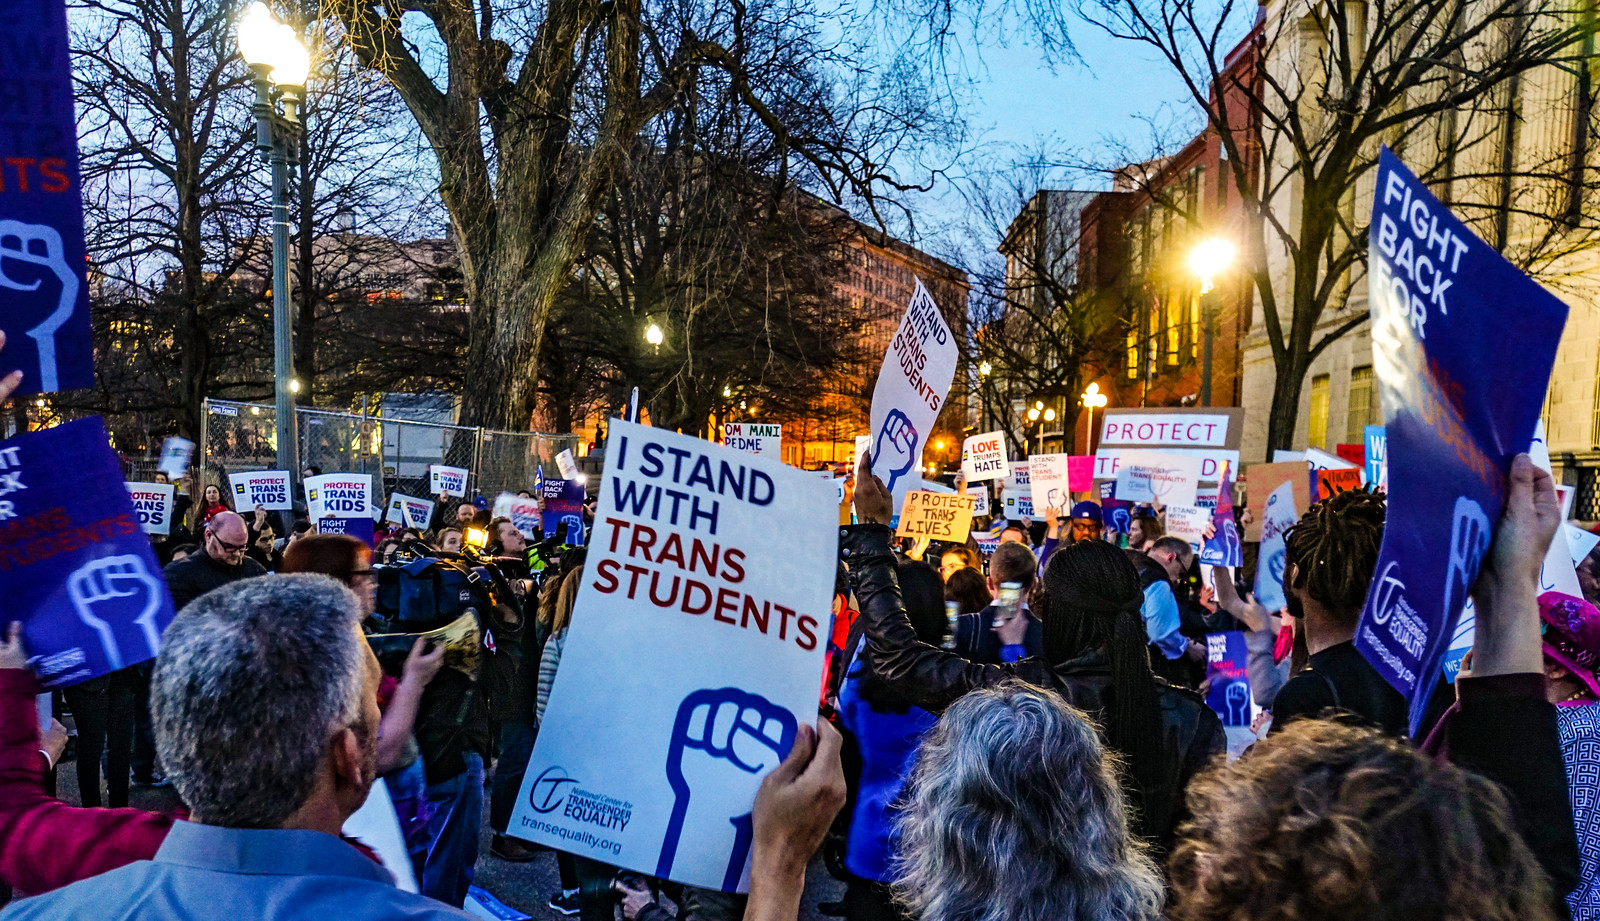 2017.02.22 ProtectTransKids Protest, Washington, DC USA 01092